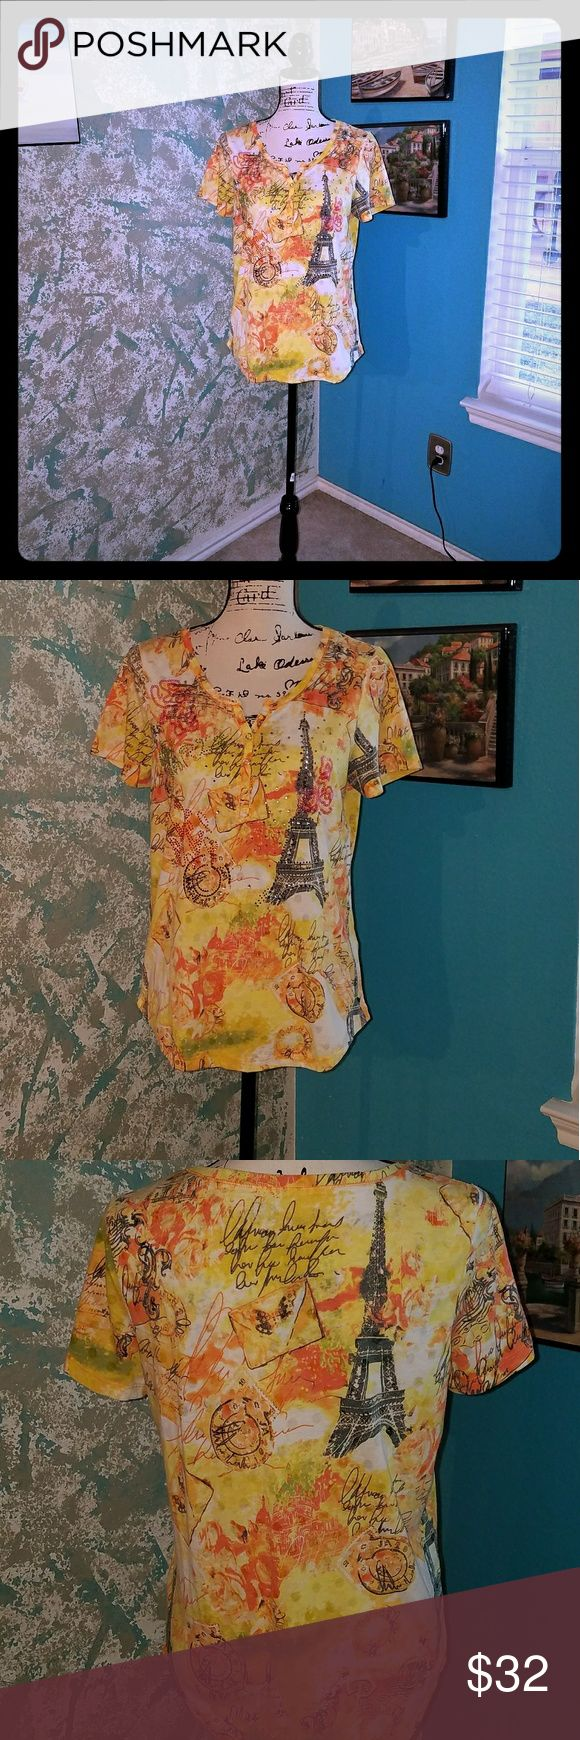 ONQUE PETITE TOP Beautiful beaded yellow/orange and brown short sleeve top NWOT Onque Petite Tops